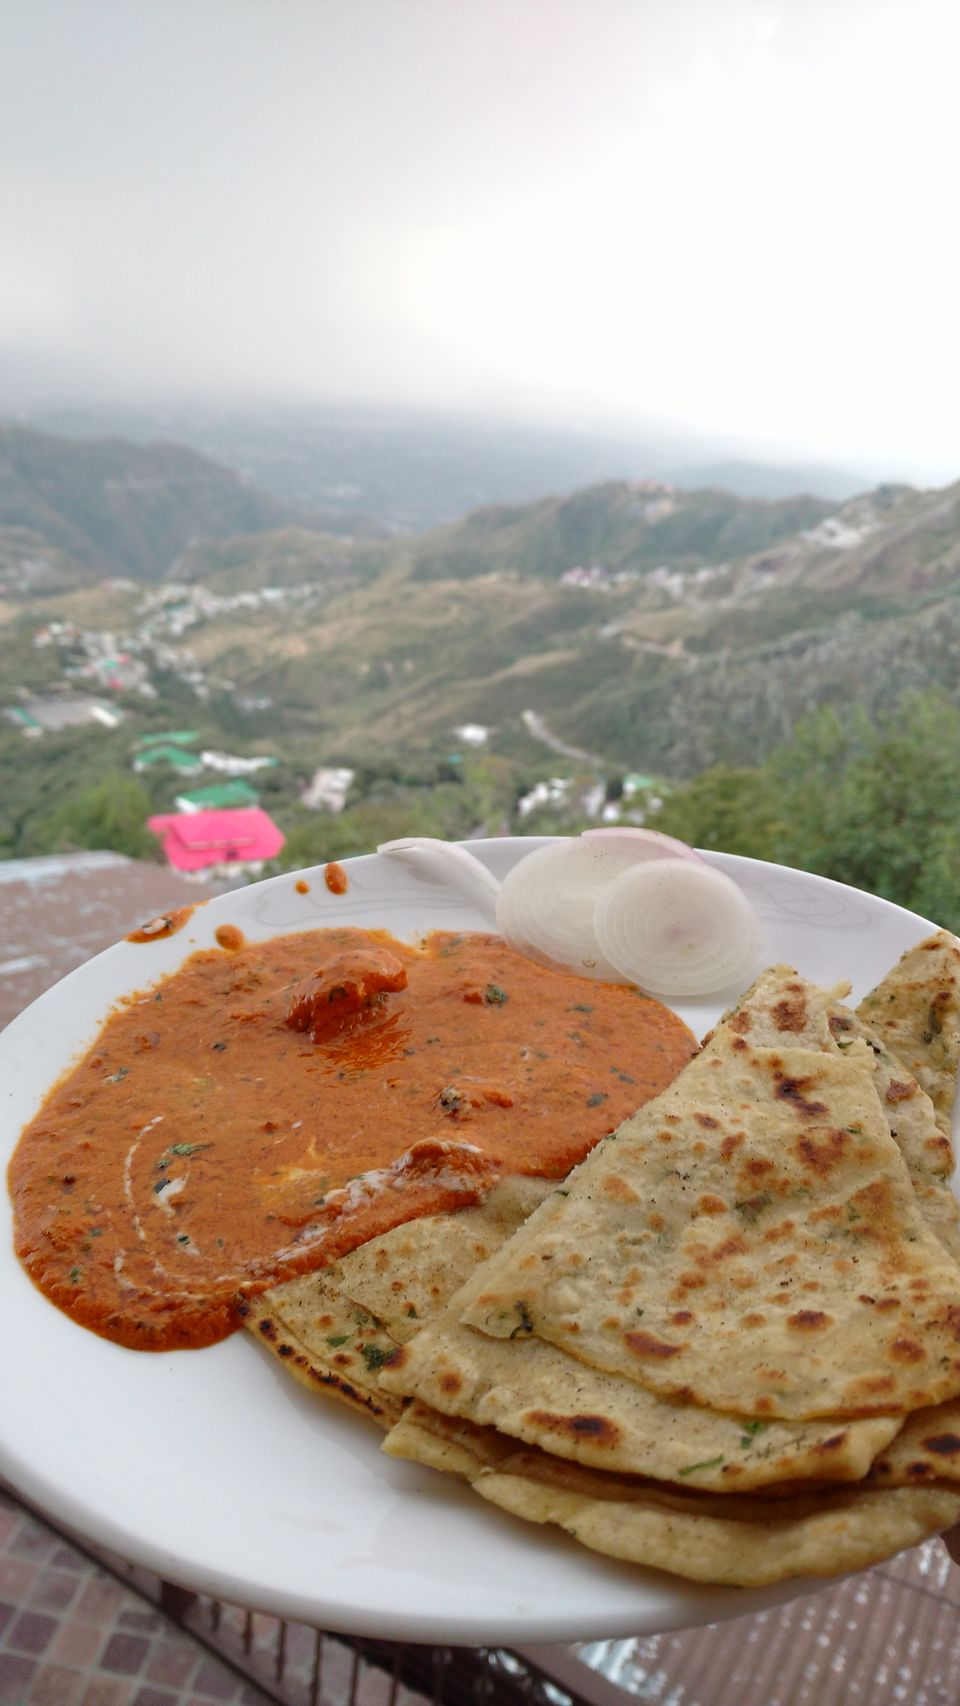 Photo of Ten Interesting Things And Places To Visit In Mussoorie, India 5/10 by Rucha S Khot